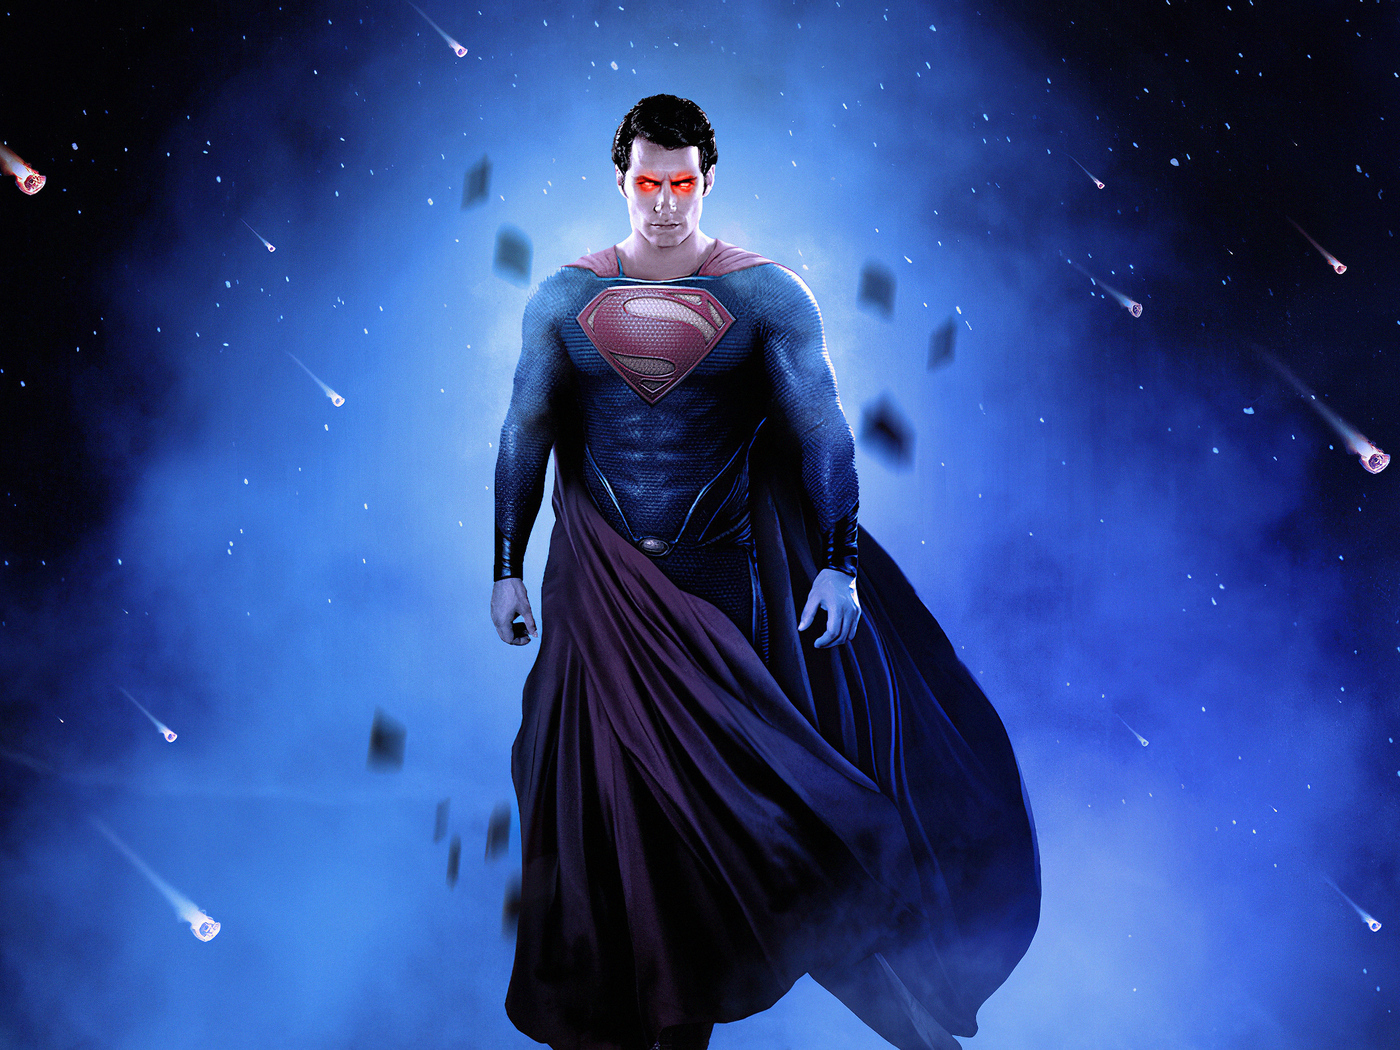 superman-up-art-dg.jpg